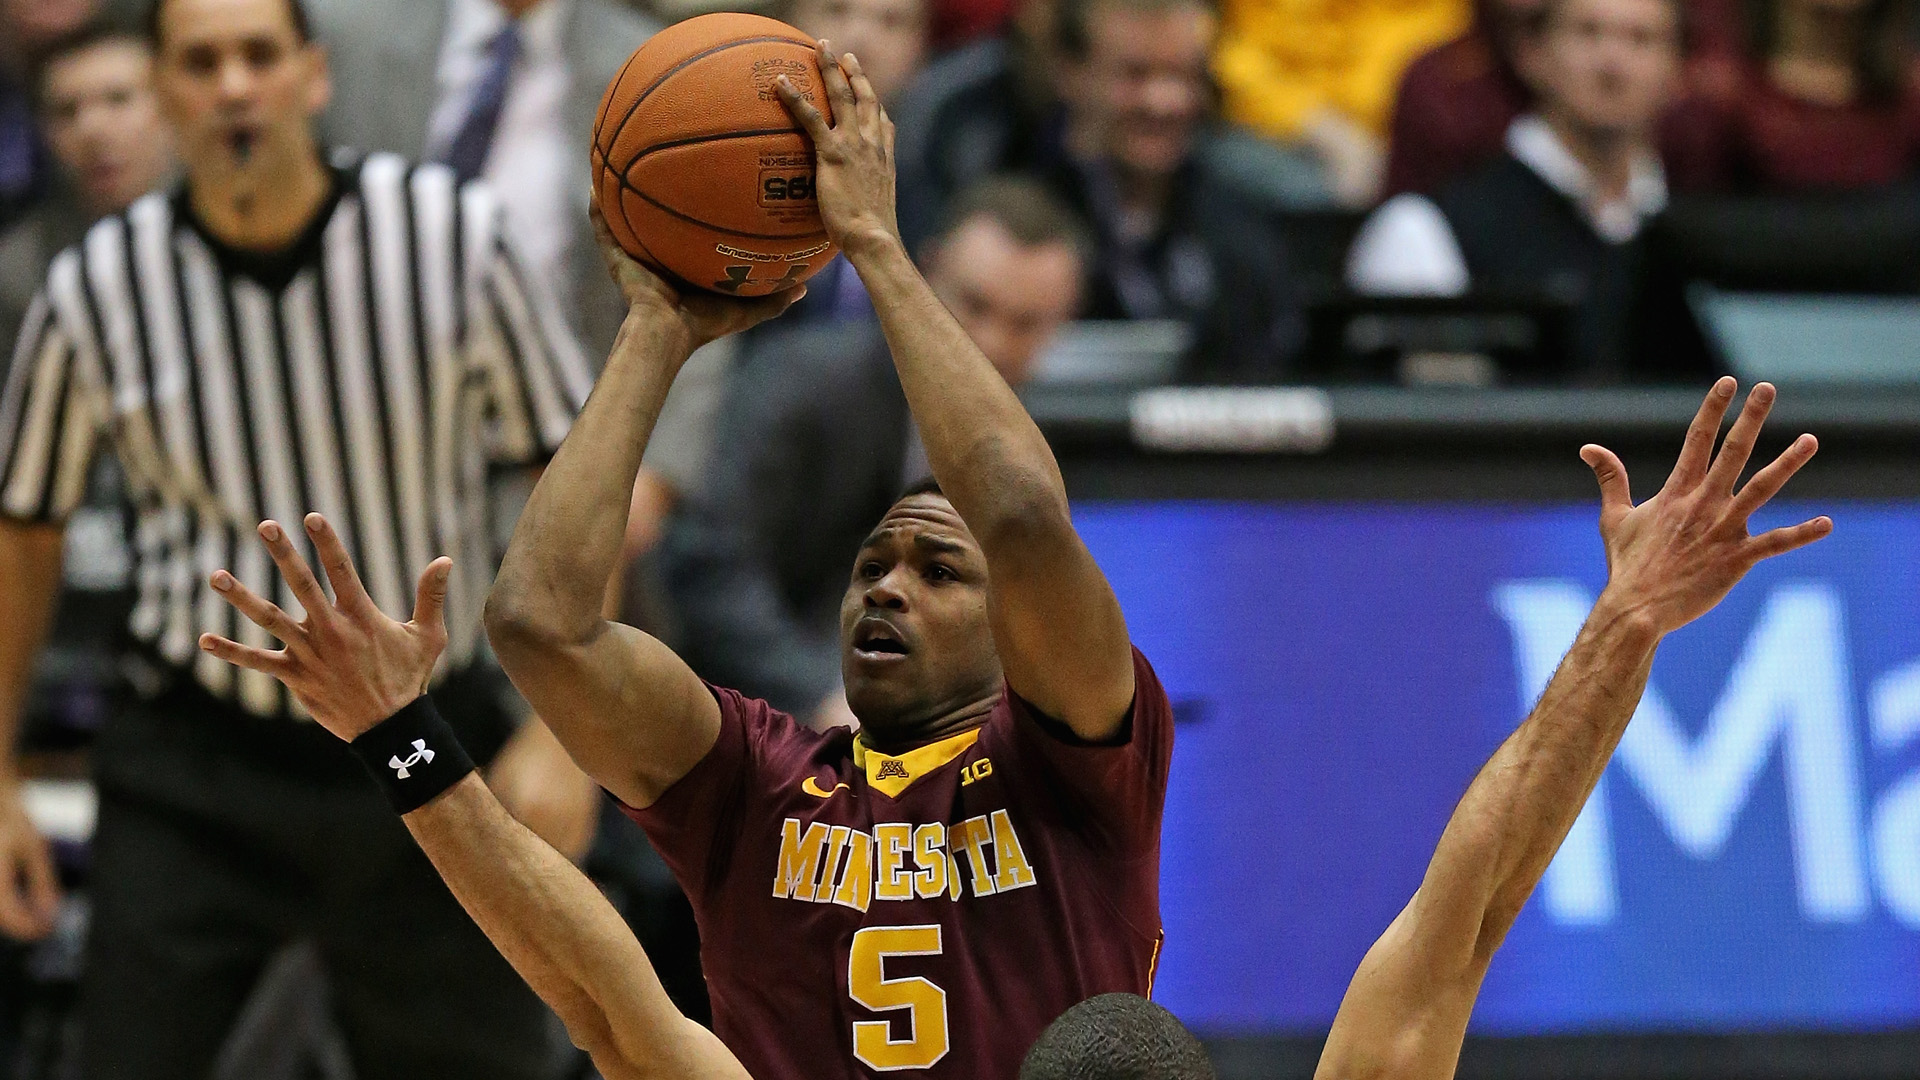 Ex-Minnesota guard wanted after failing to appear in court